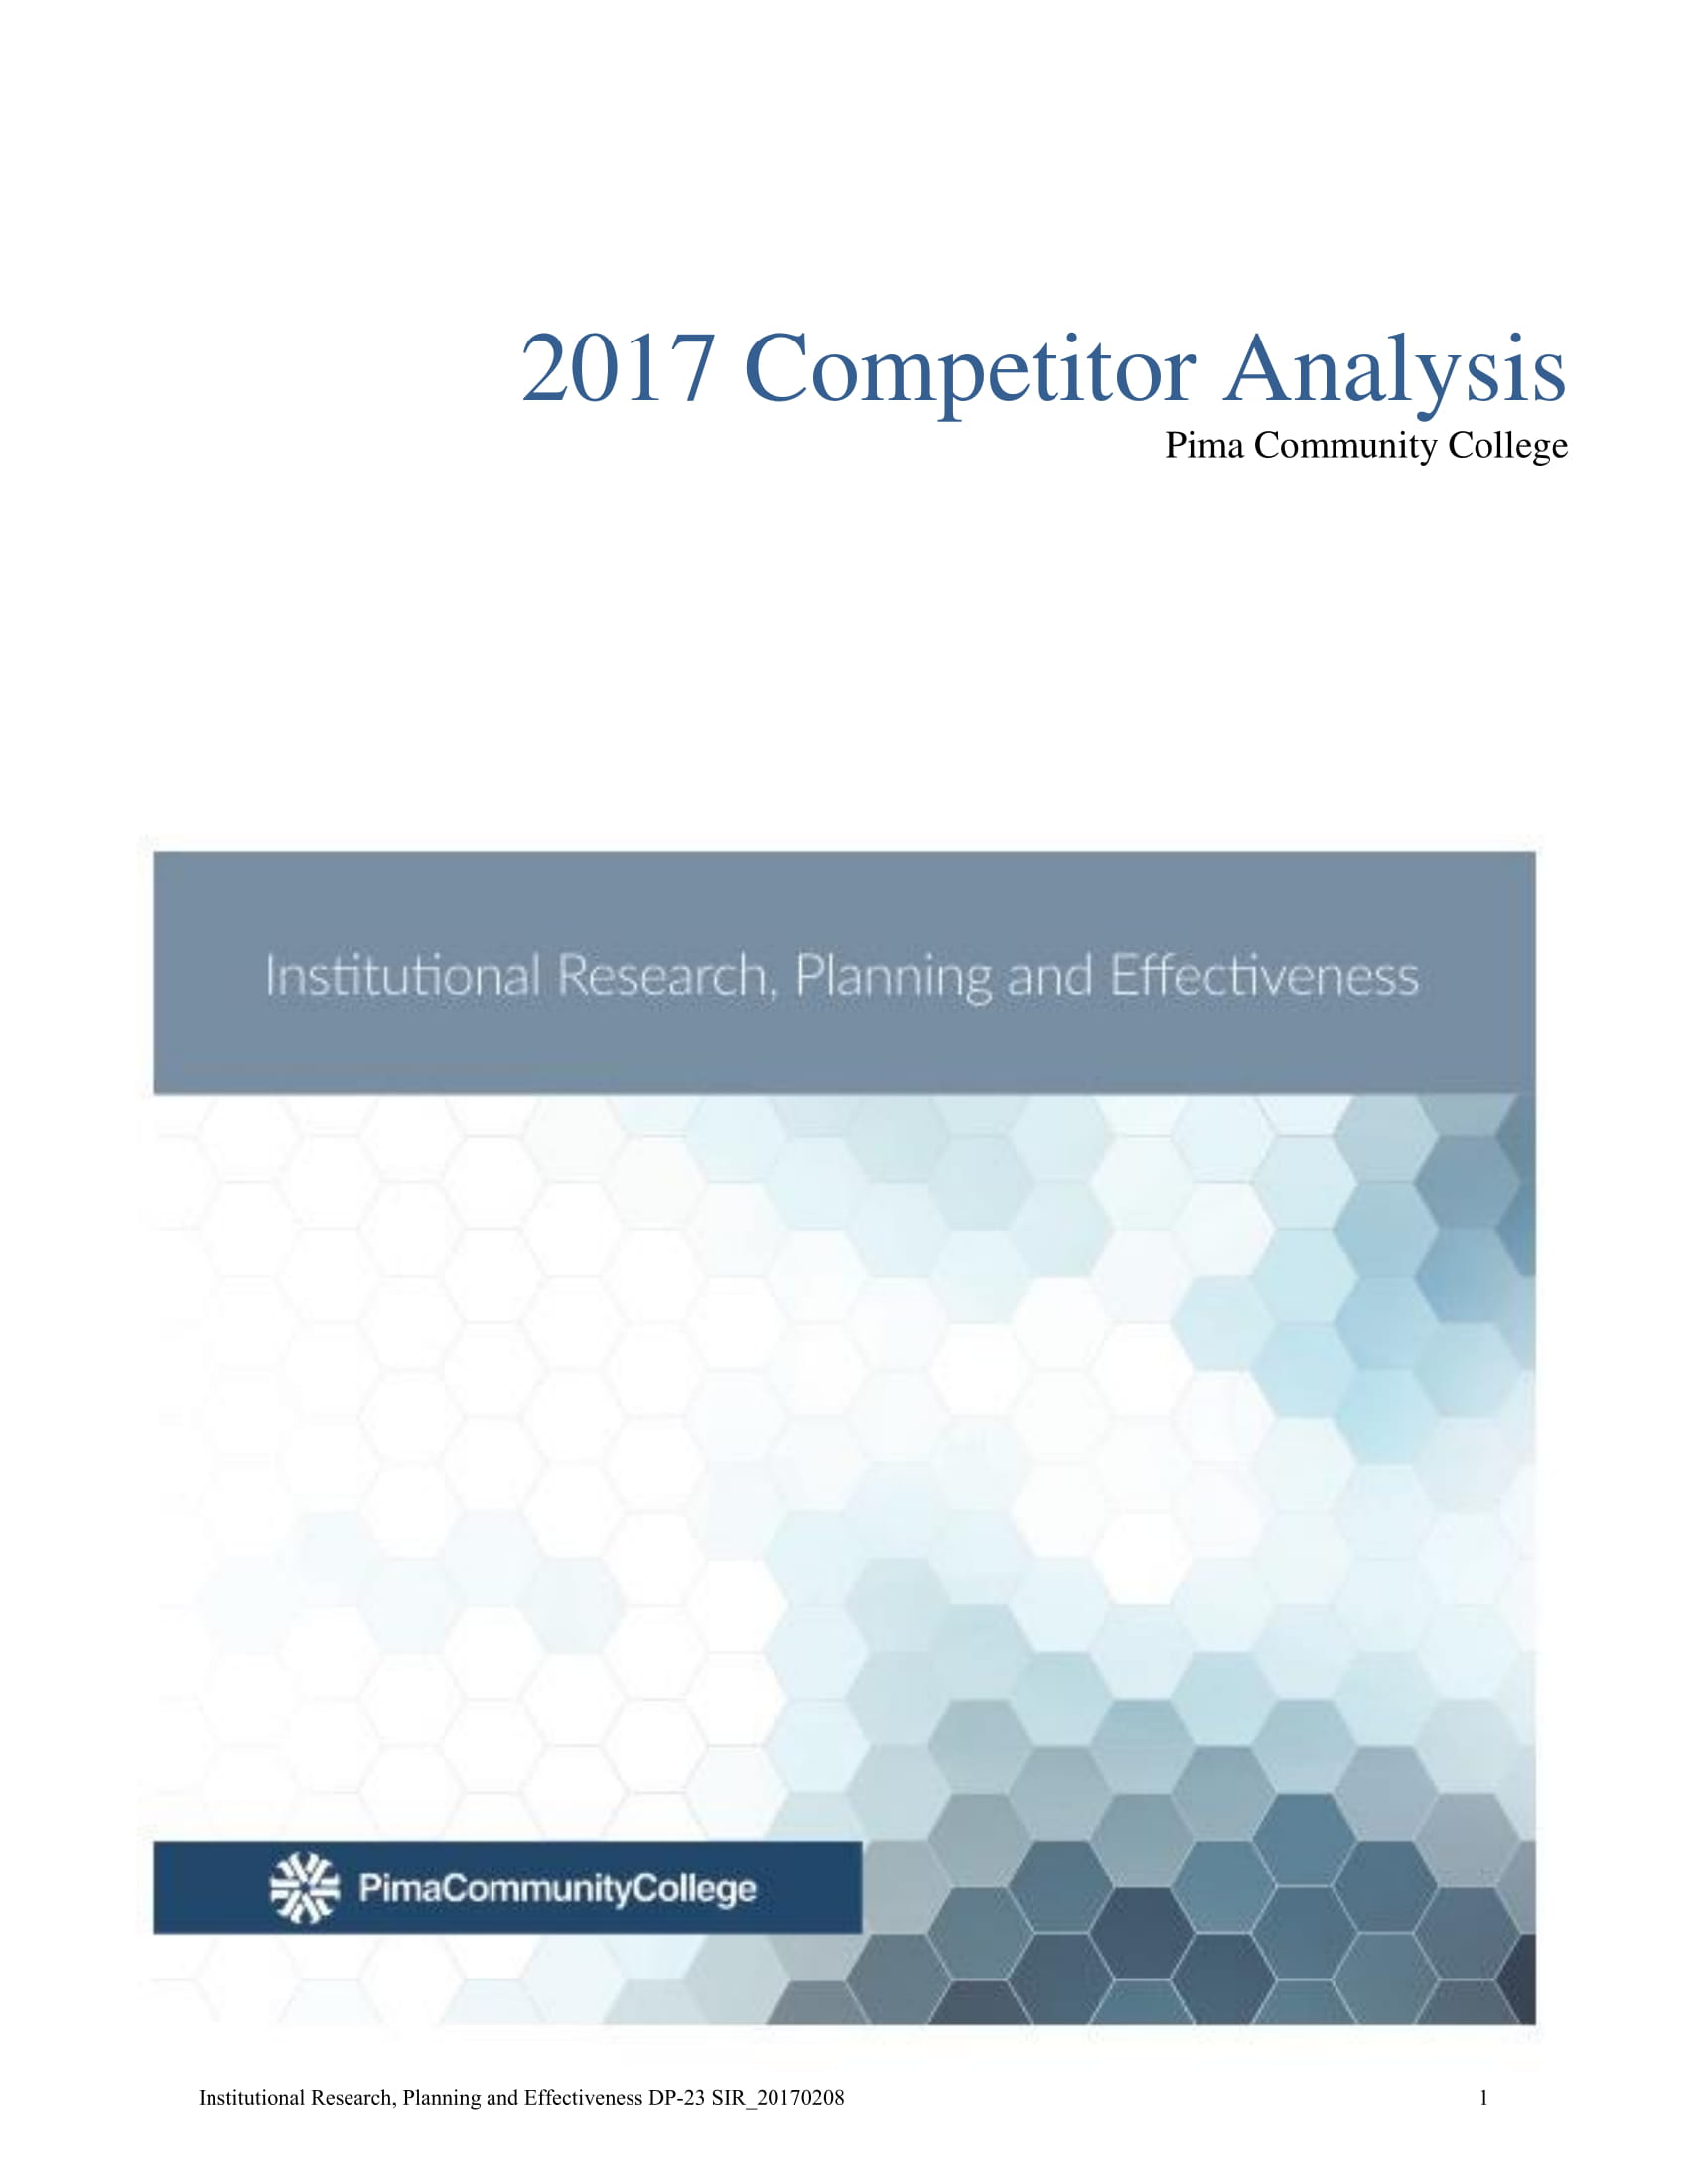 basic competitor analysis report example 01